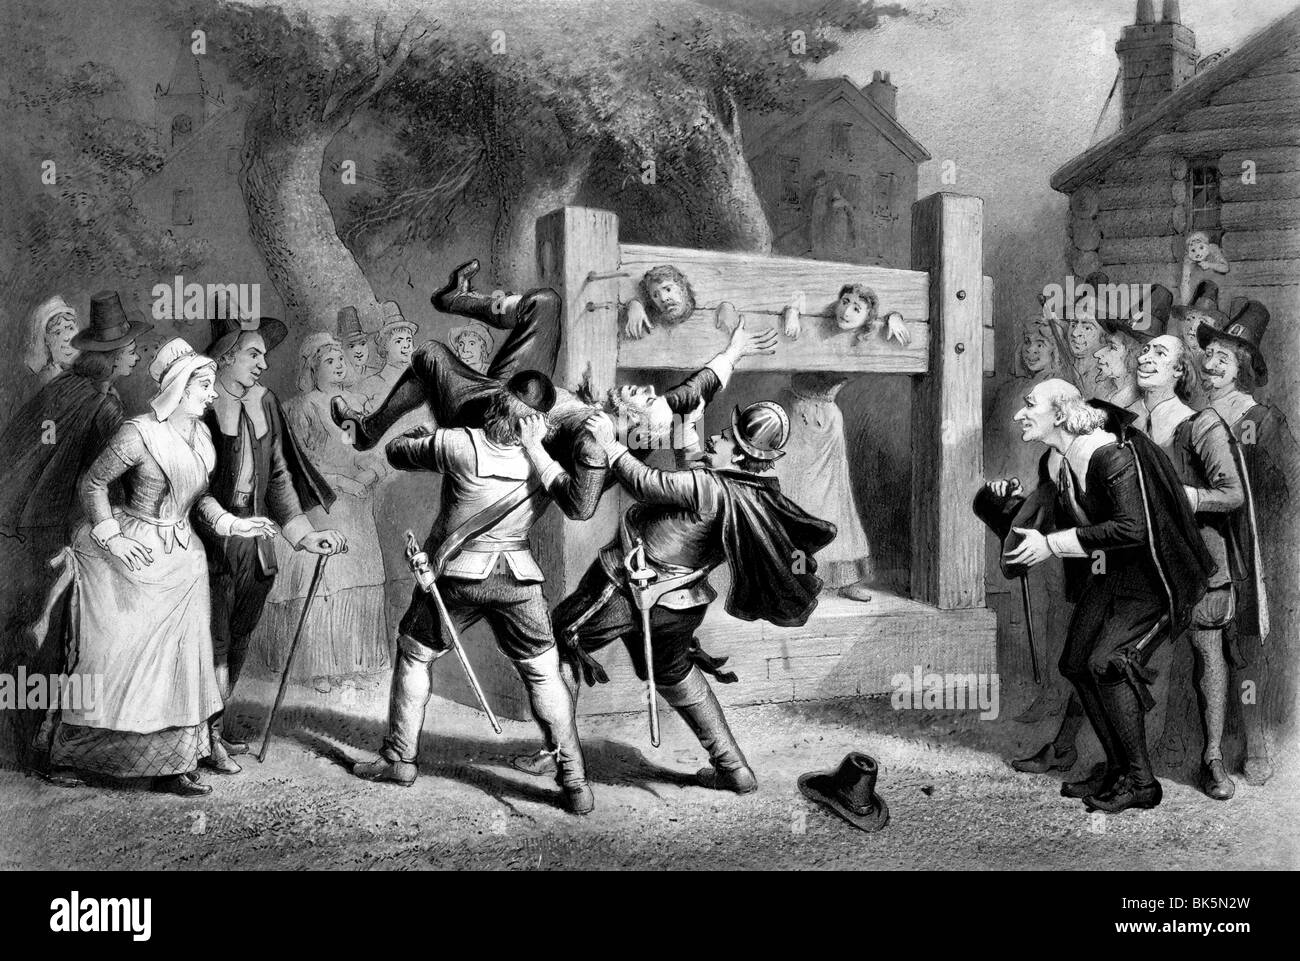 The witch, number 2. A hysterical scene in early New England with a man being dragged away and a couple in a pilloryStock Photo